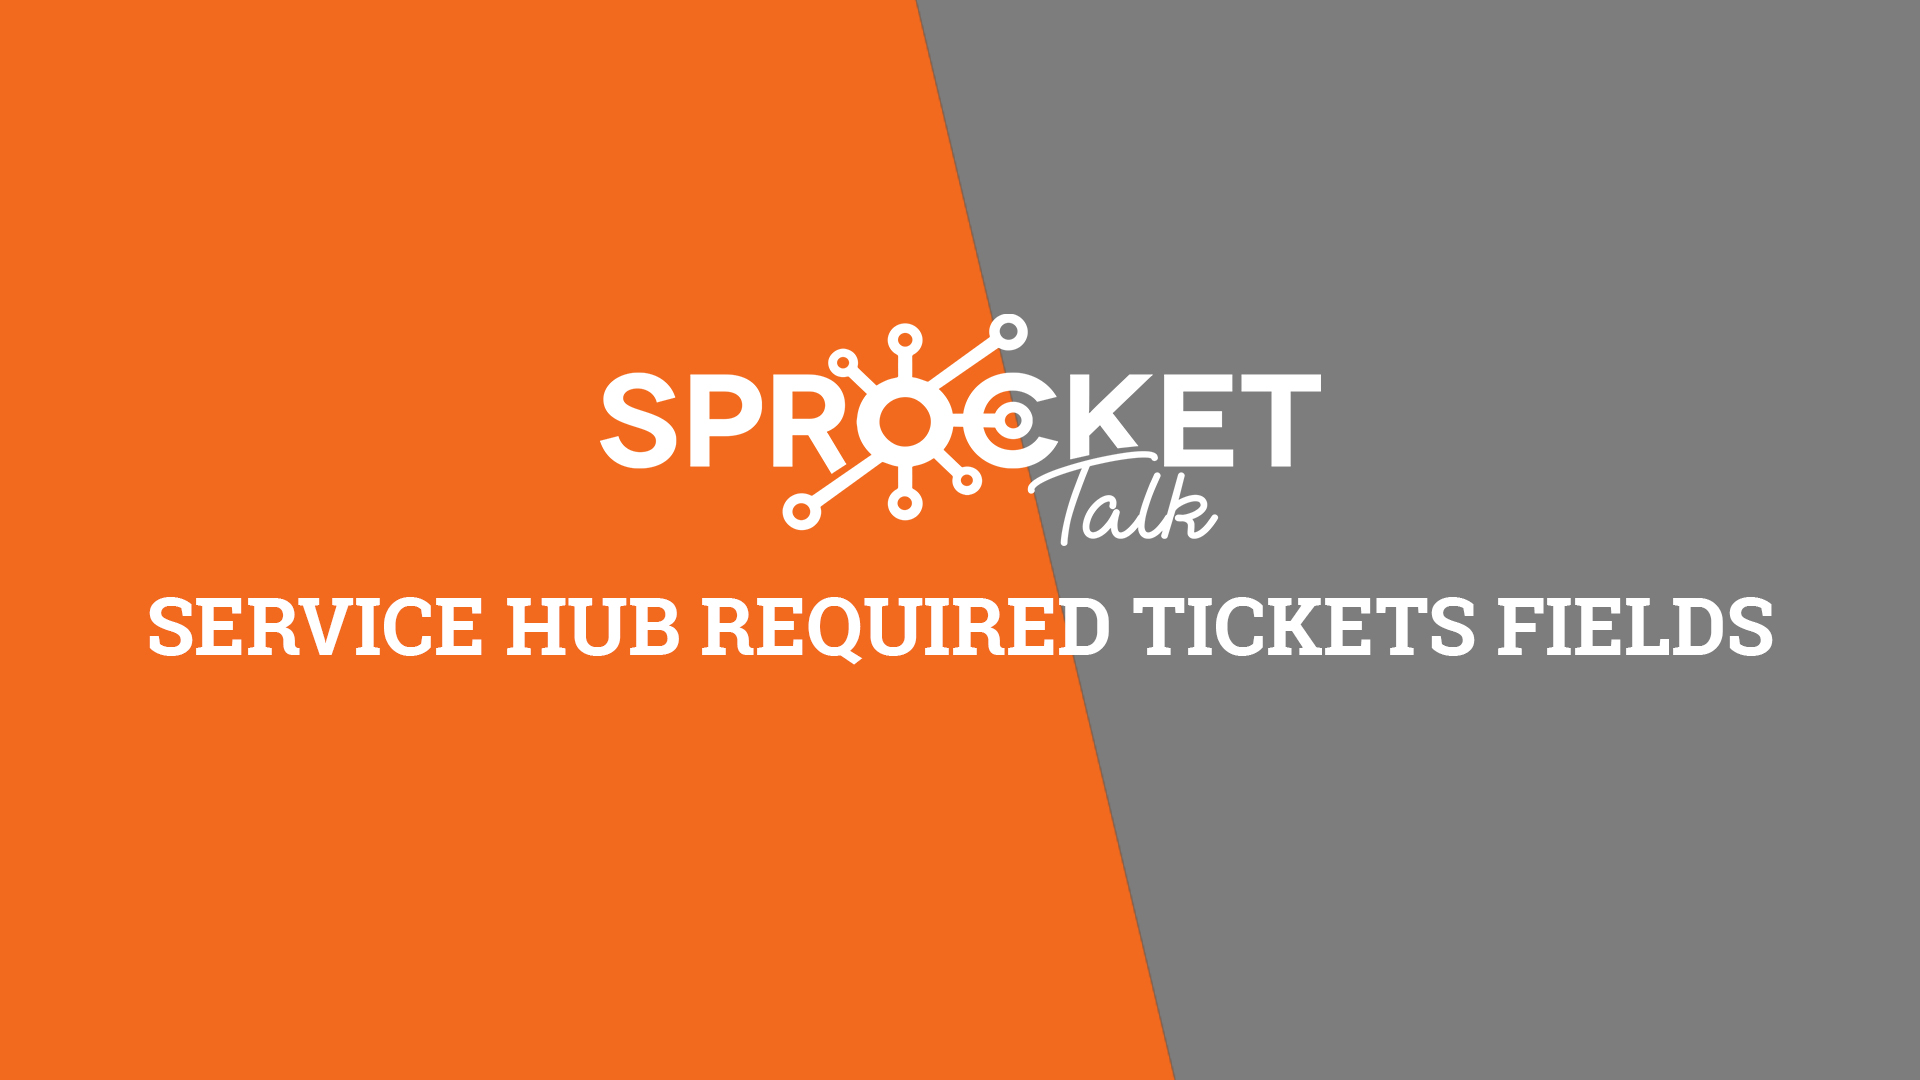 Service Hub Required Tickets Fields